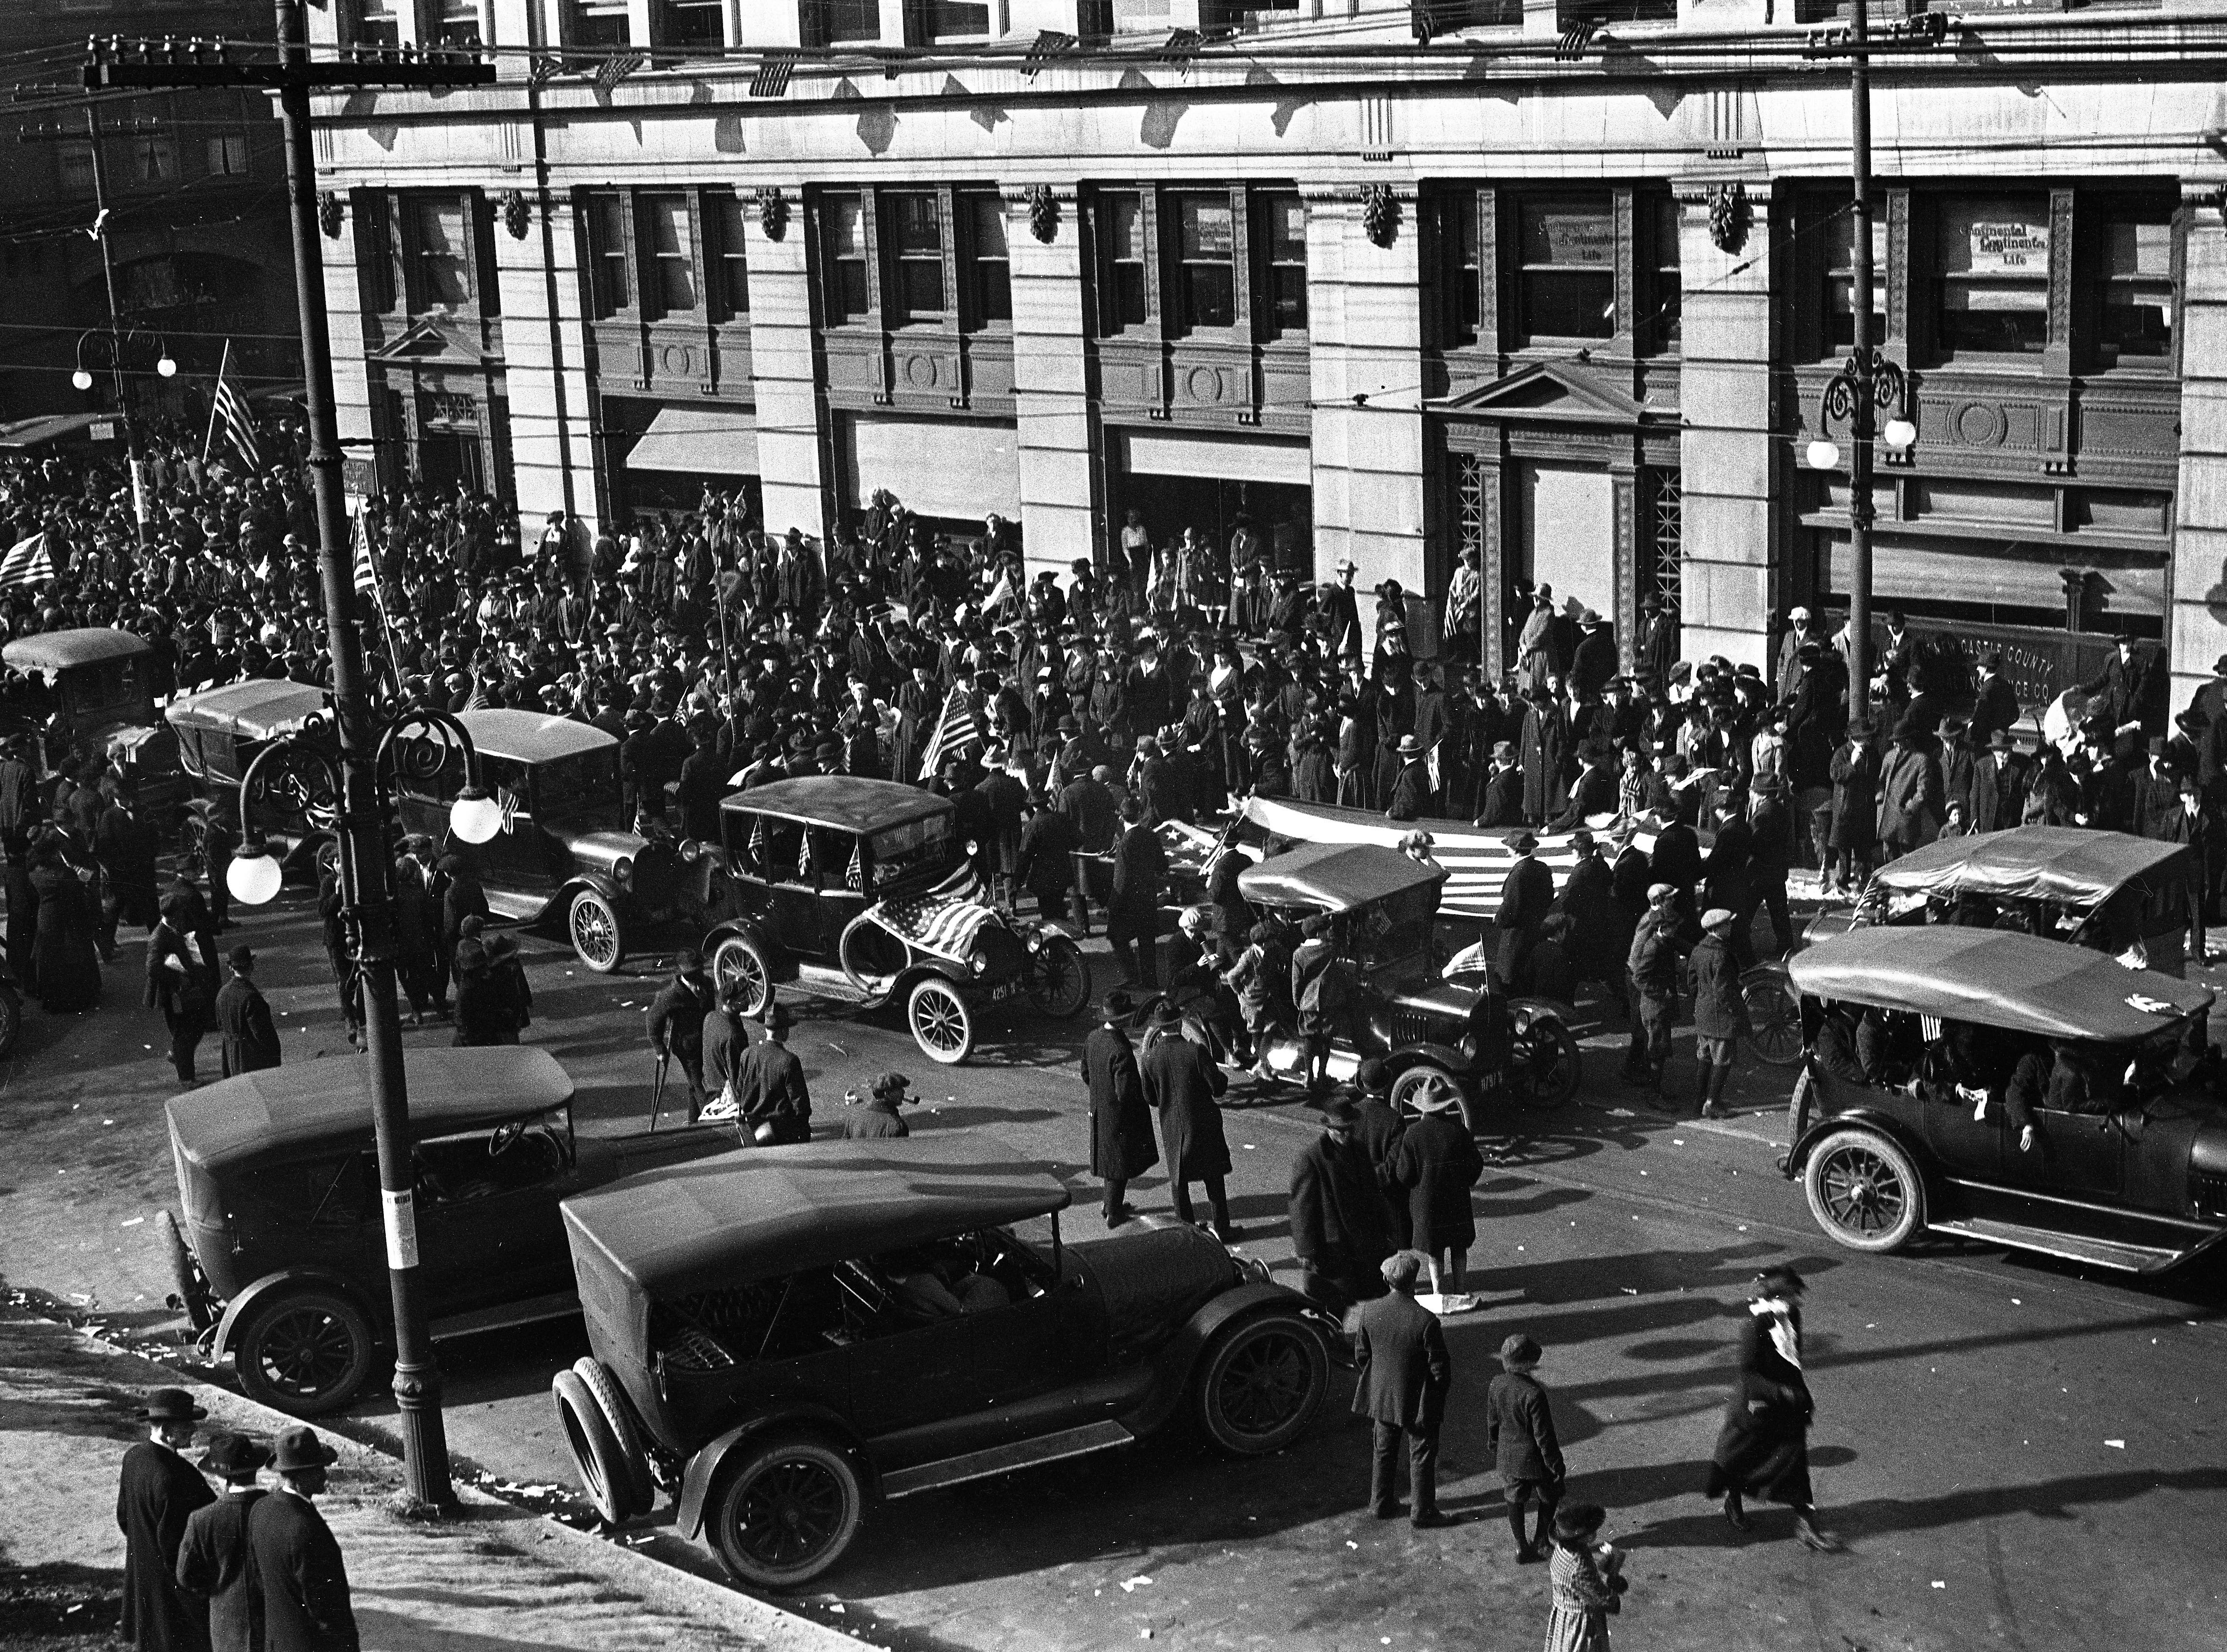 Scenes from the Wilmington Peace Parade after Armistice Day in 1918; crowds, cars and American flags in front of the du Pont building.